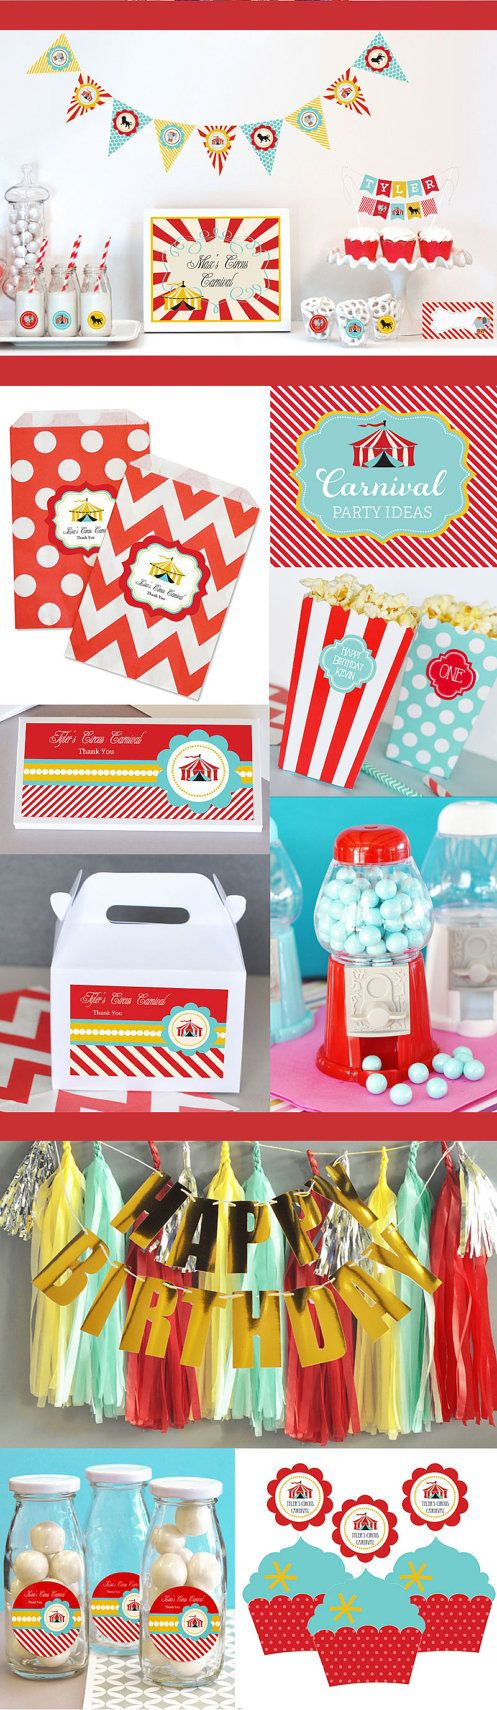 Boys First Birthday Party Carnival Party Decorations by ModParty